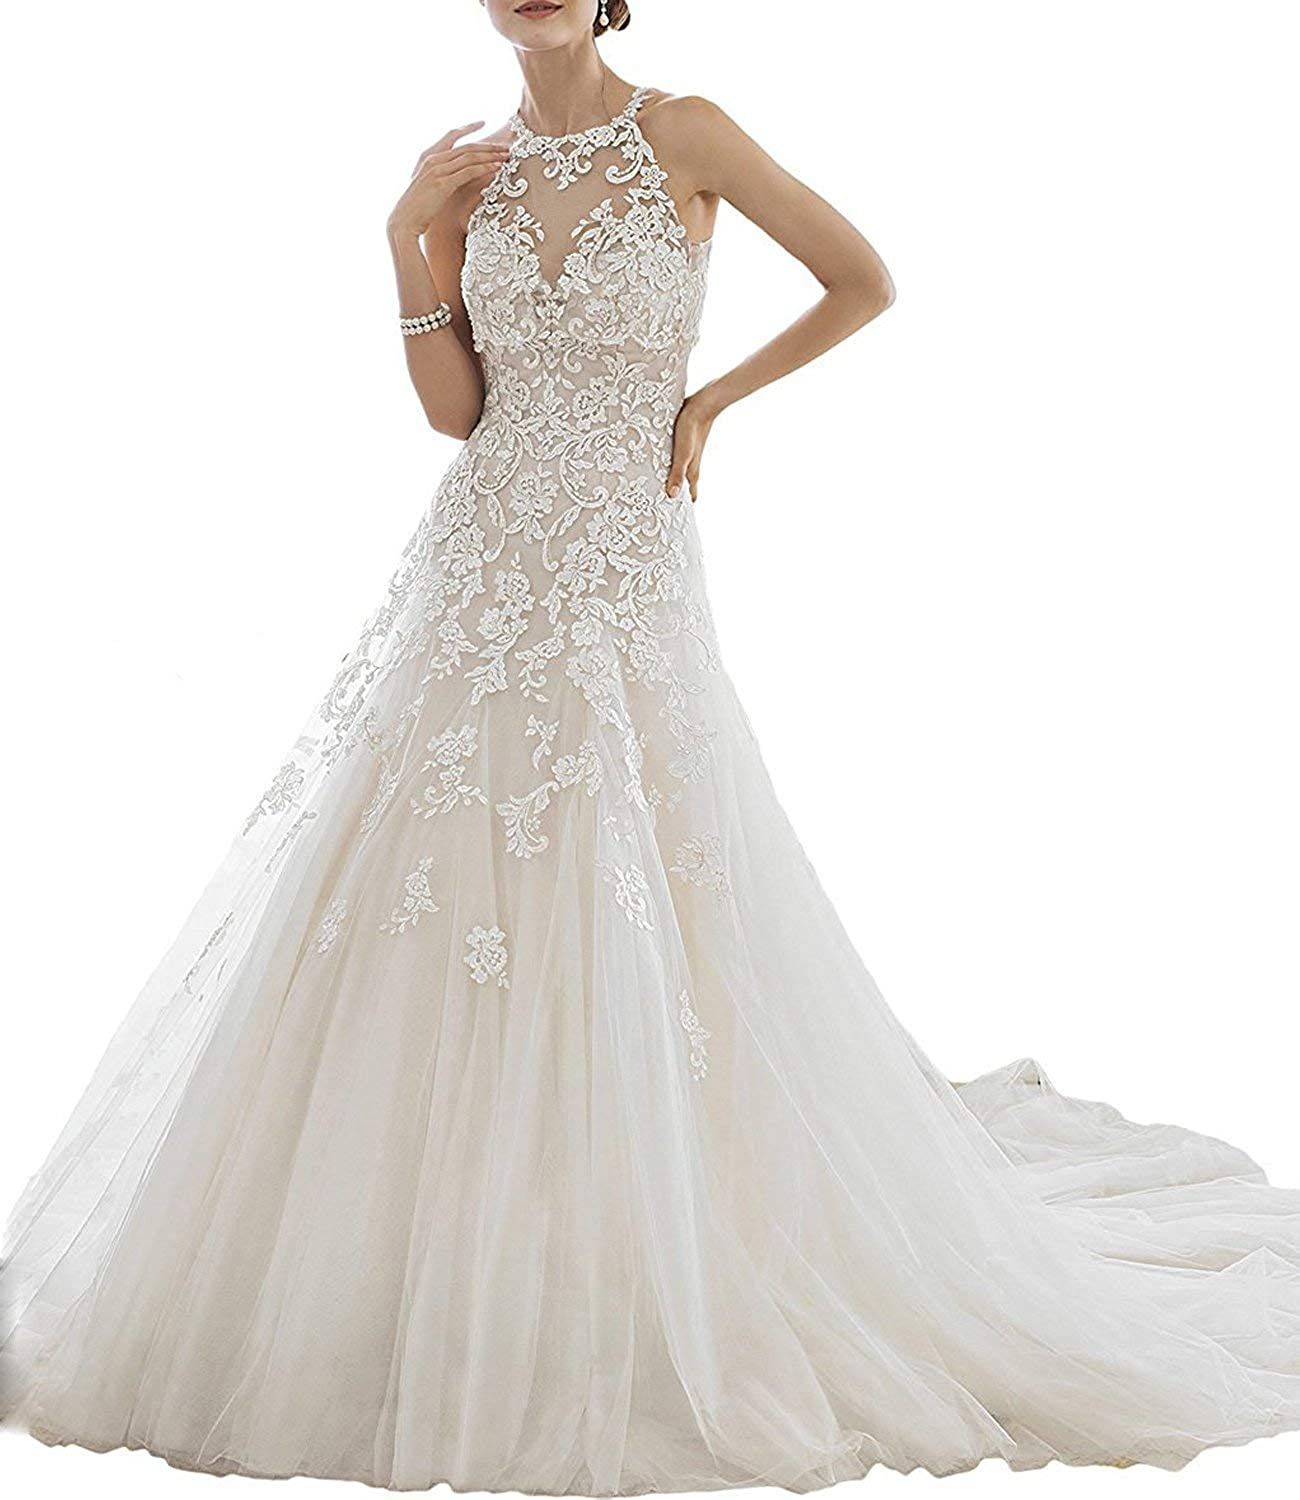 Yilian Appliques Lace Mermaid Wedding Dresses for Bride with Jacket